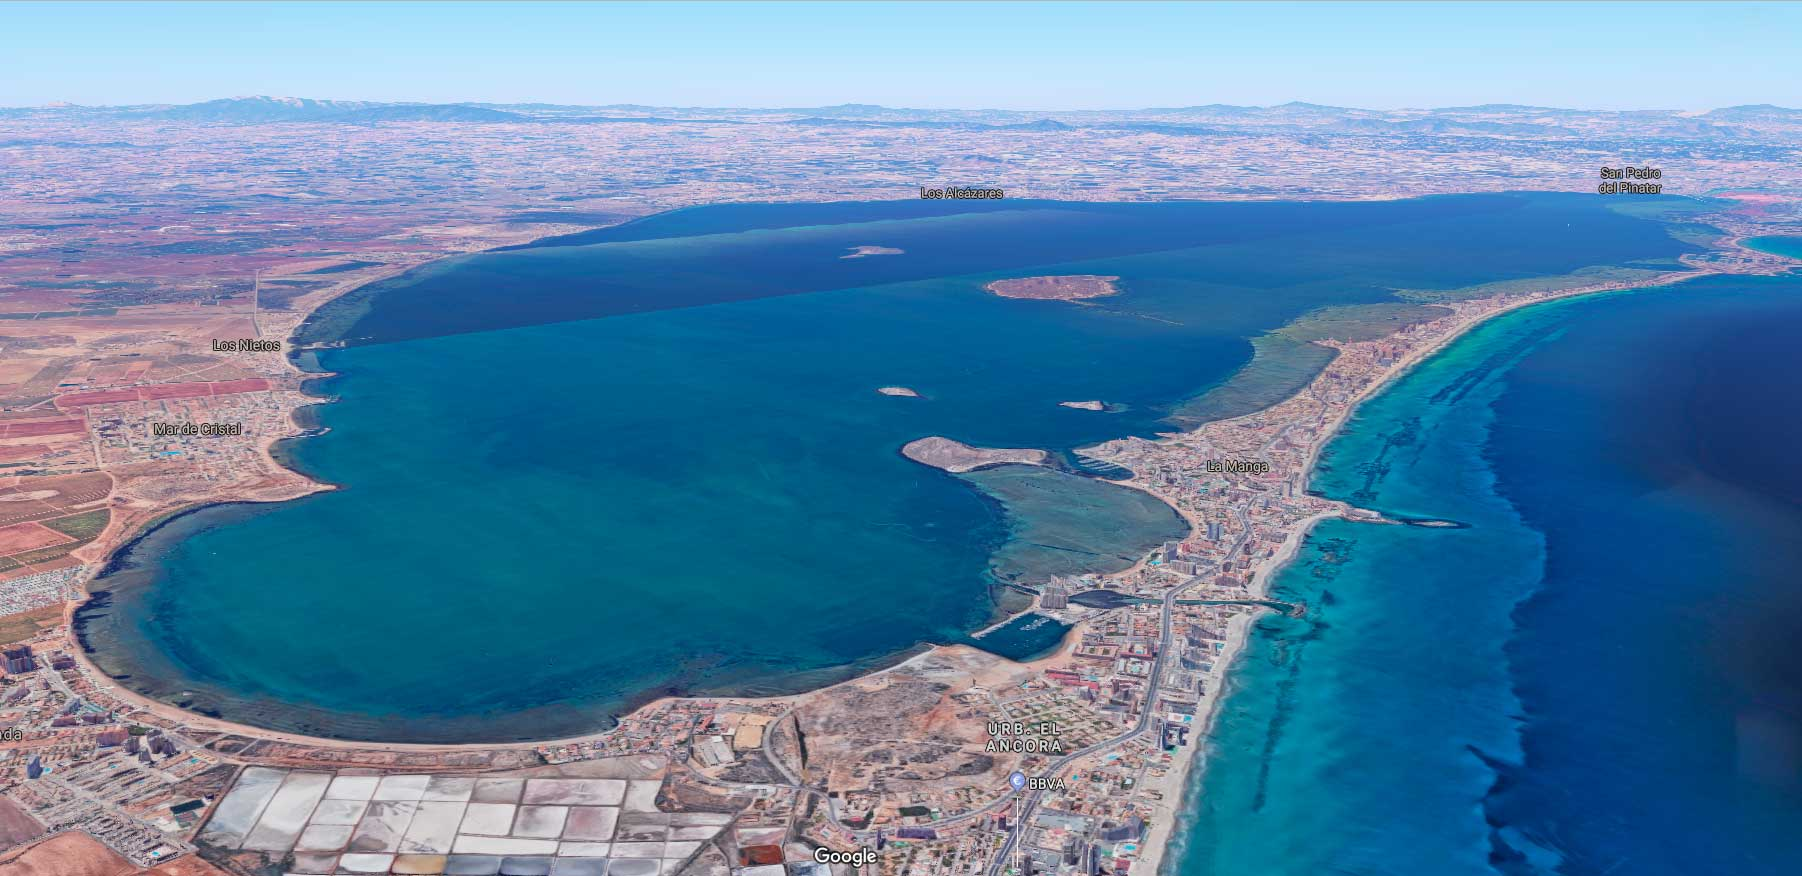 The problem with Mar Menor is the excess of nutrients